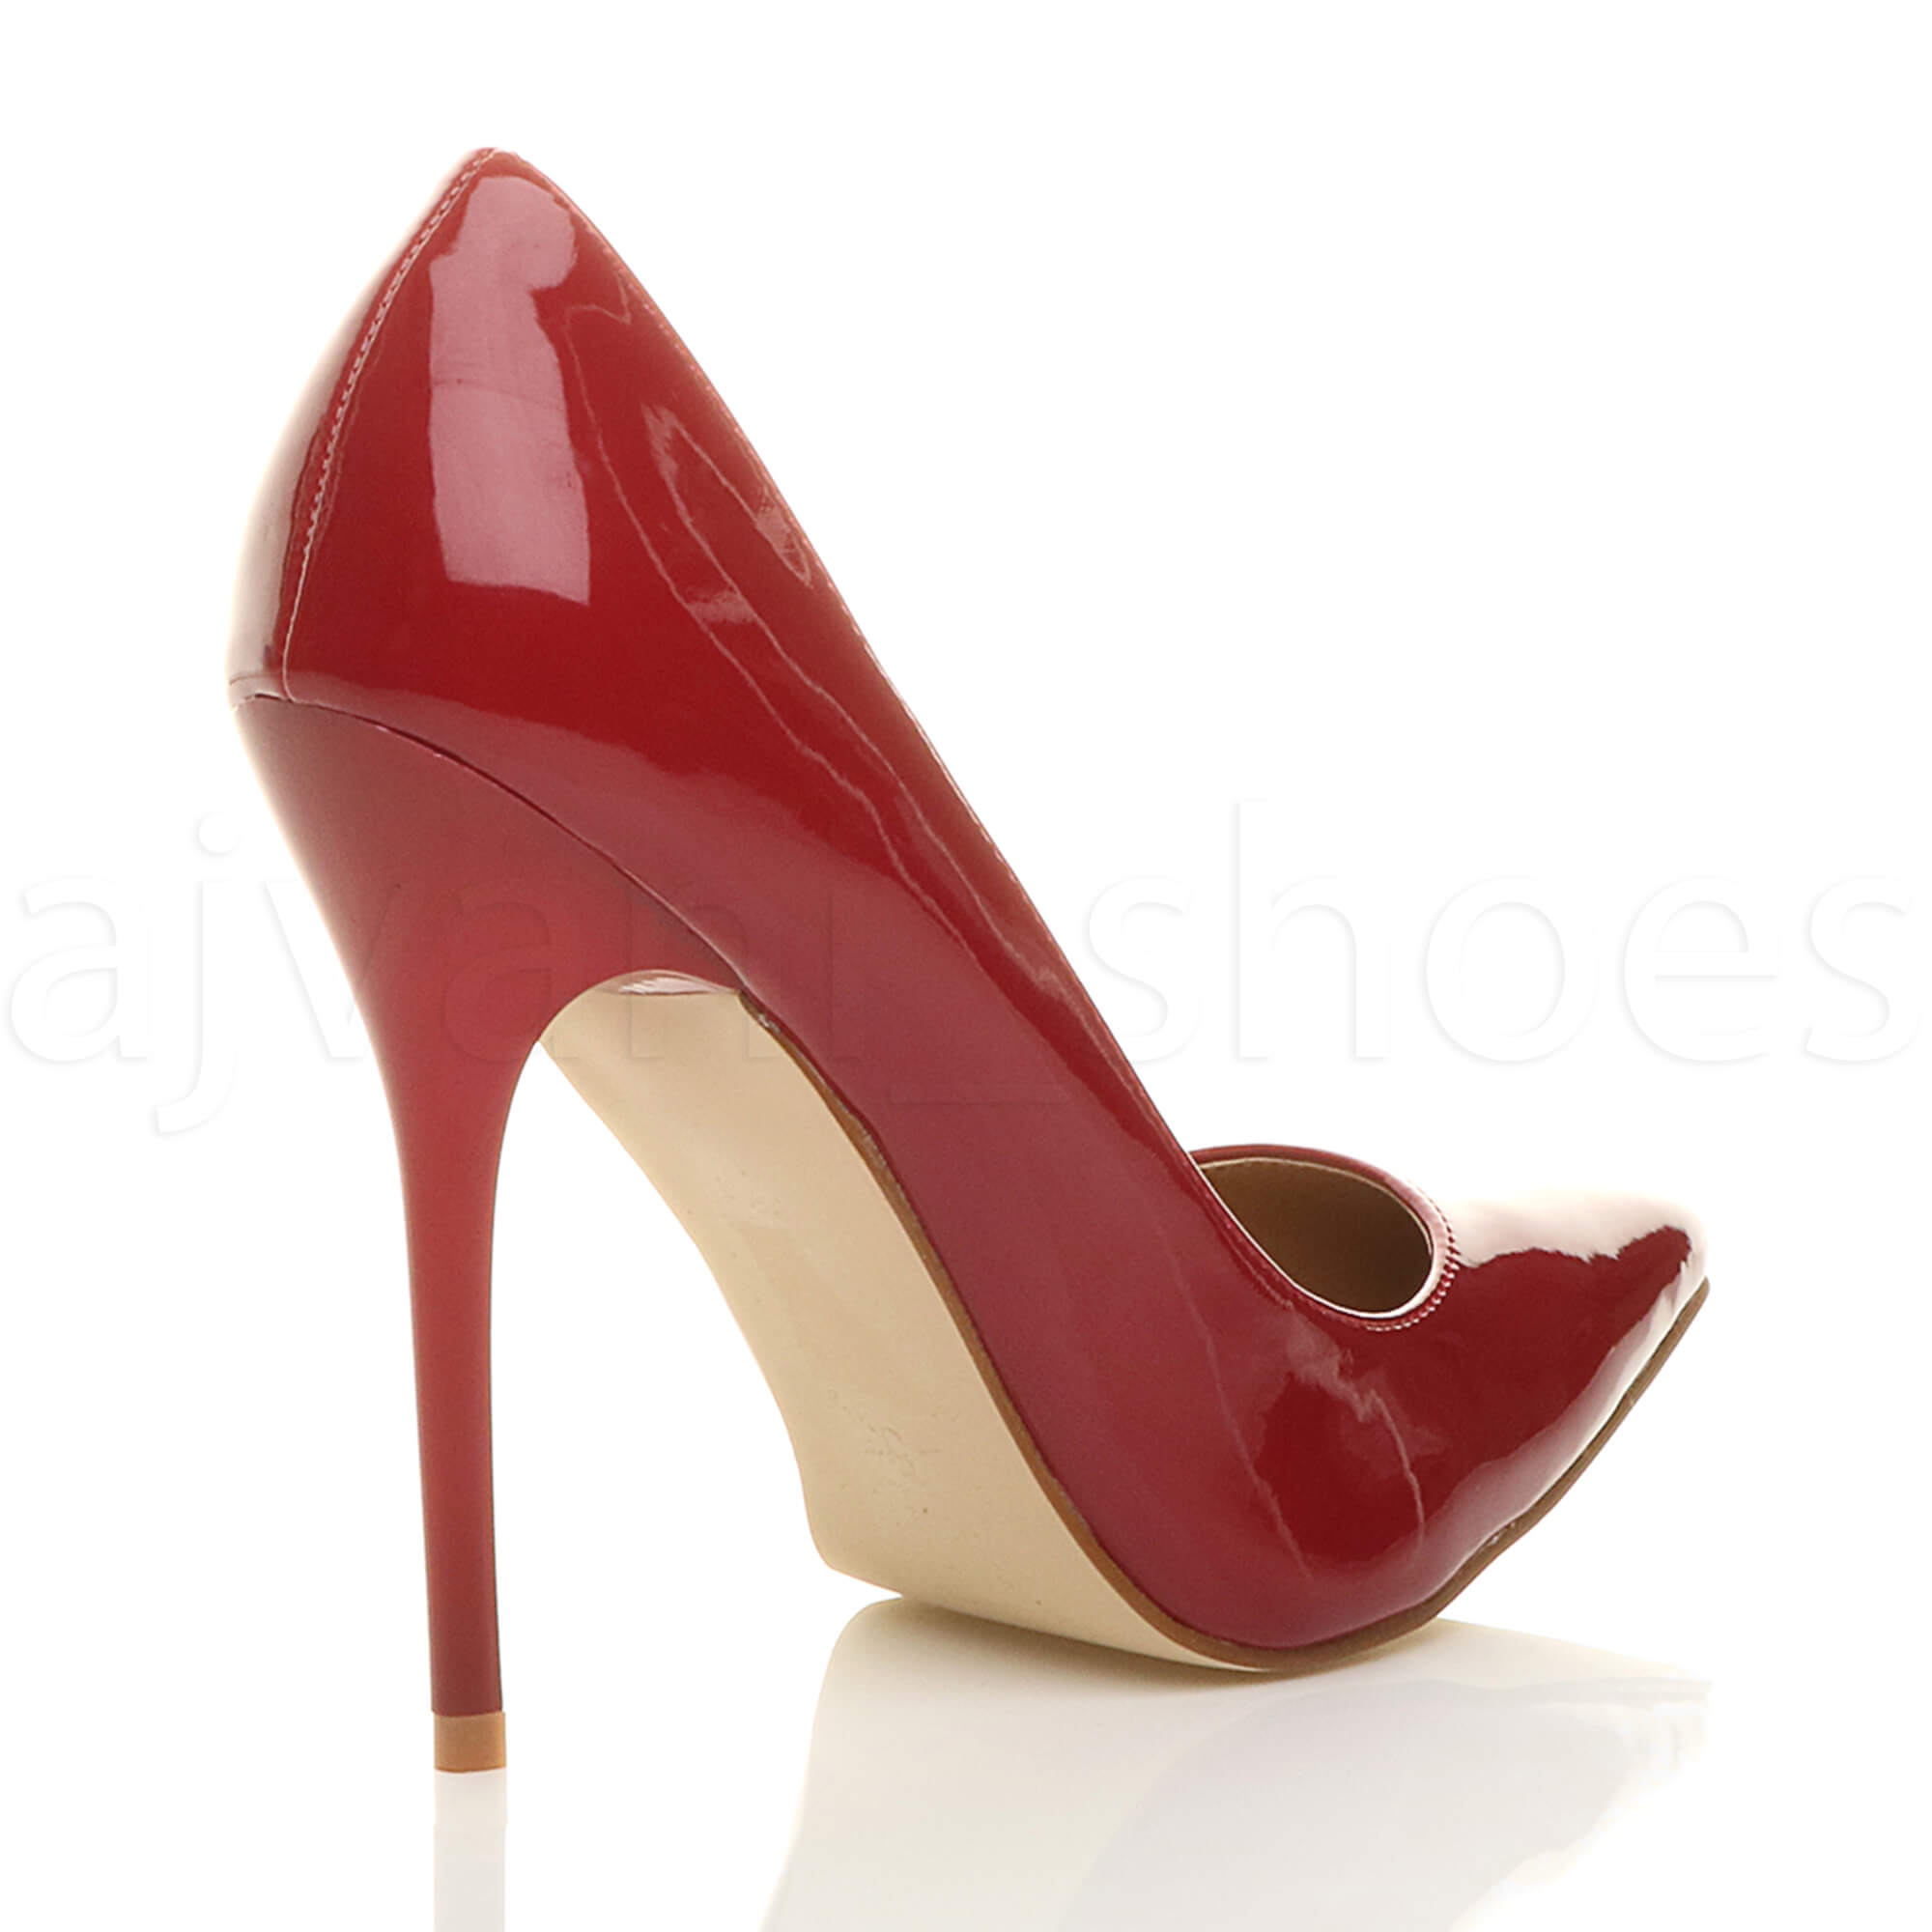 WOMENS-LADIES-HIGH-HEEL-POINTED-CONTRAST-COURT-SMART-PARTY-WORK-SHOES-PUMPS-SIZE thumbnail 37